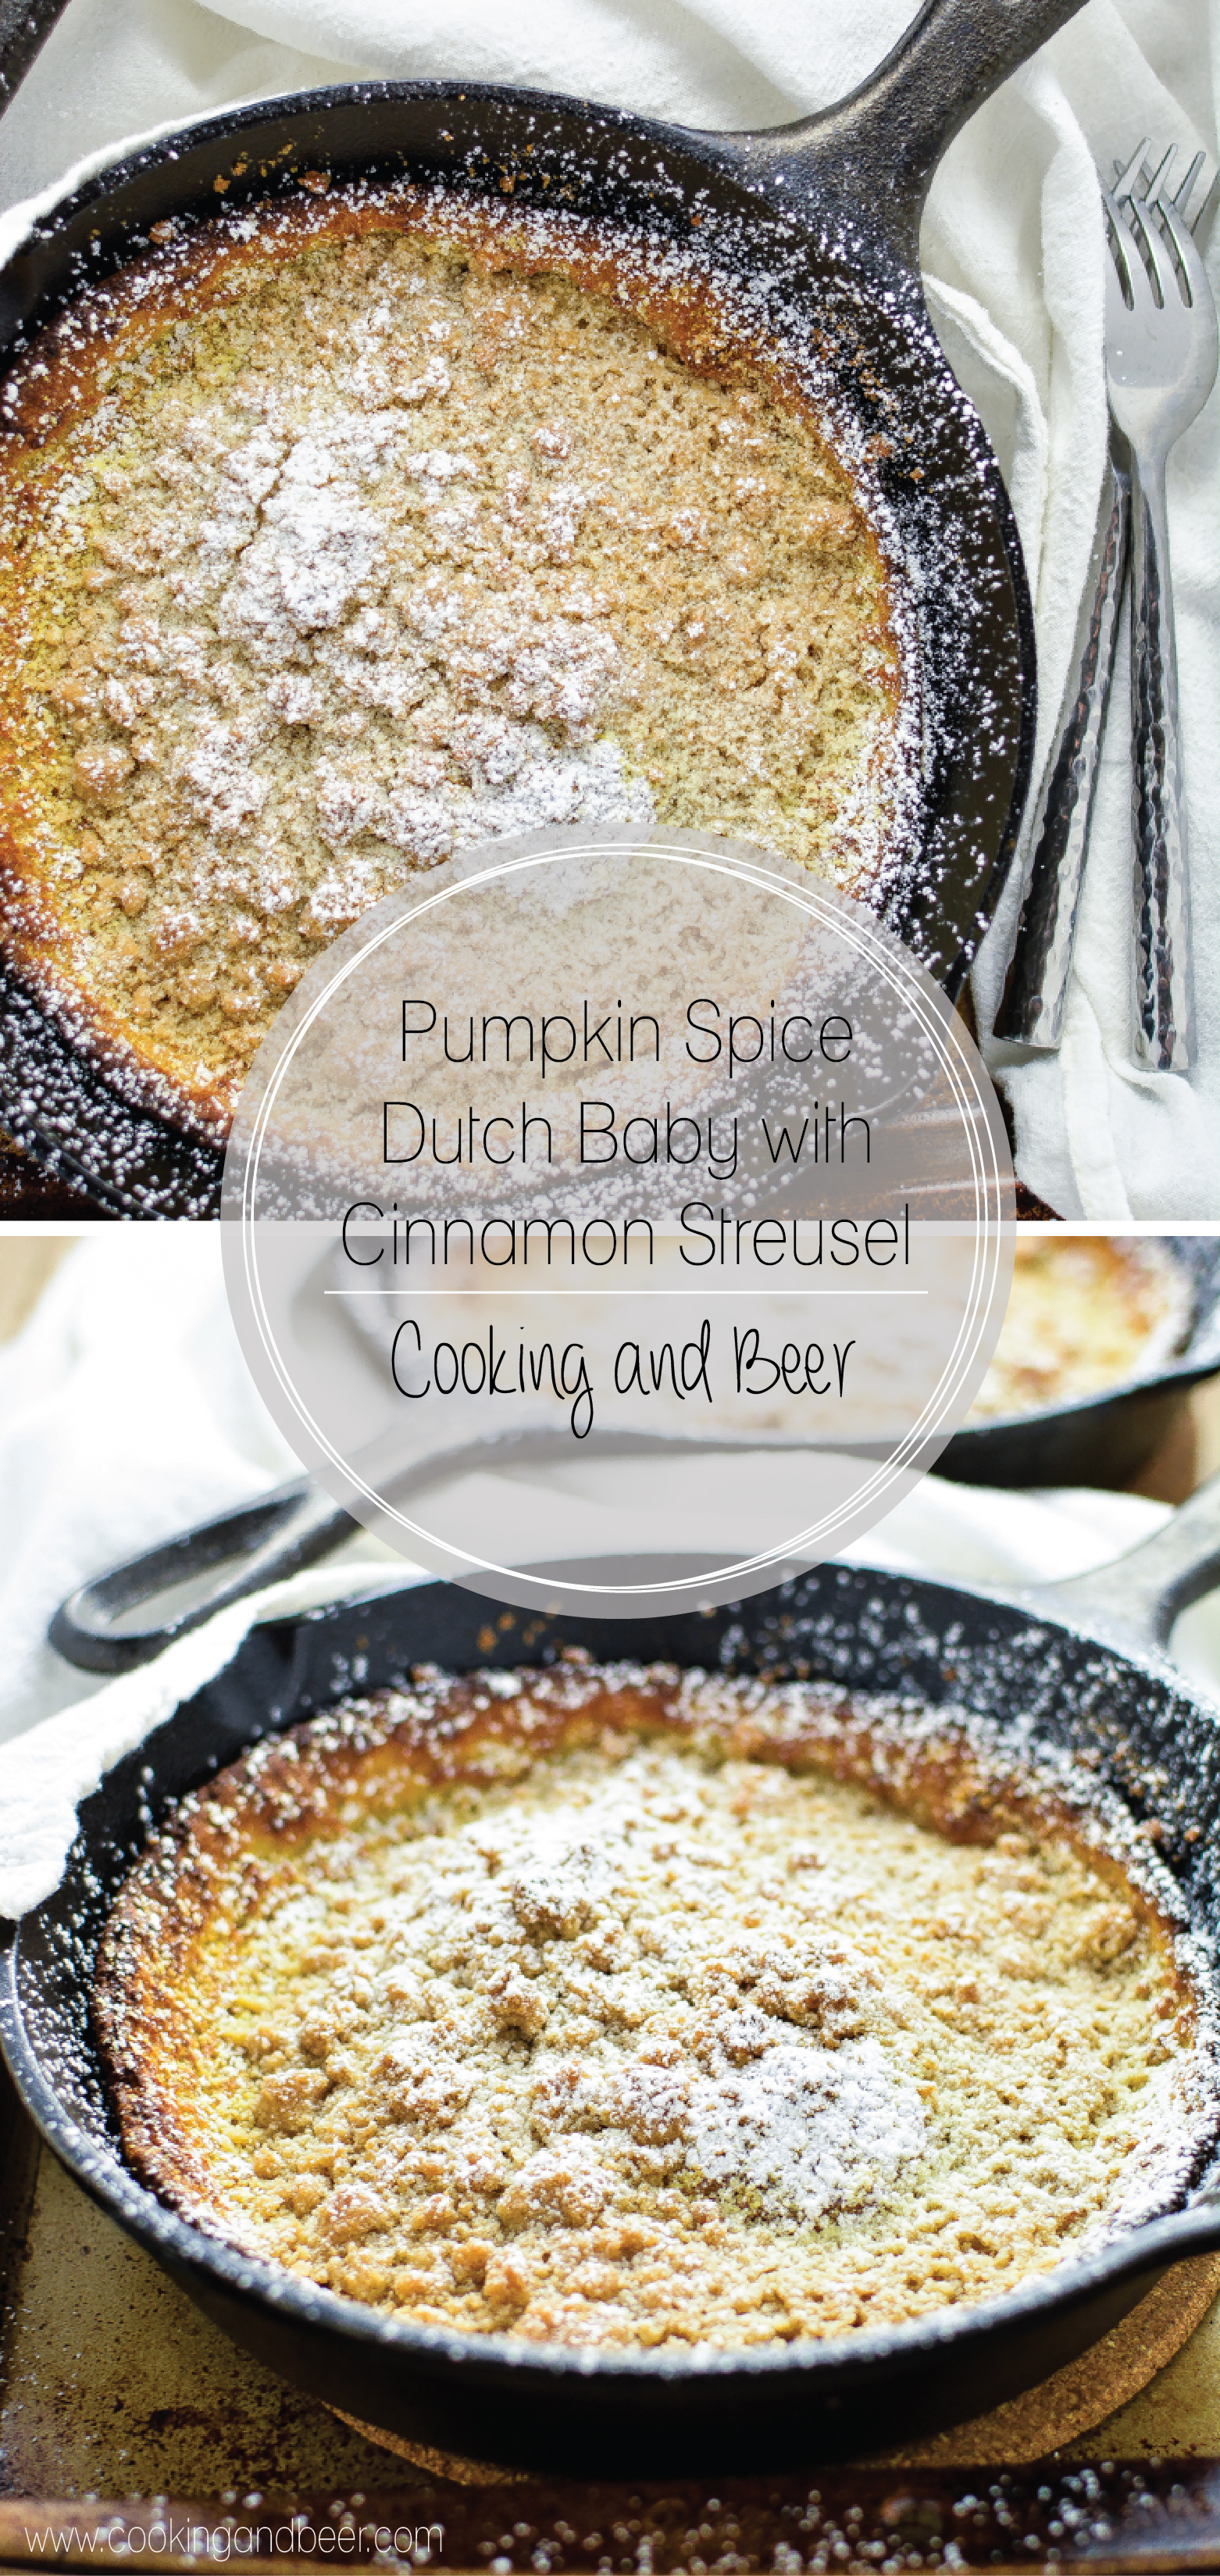 Pumpkin Spice Dutch Baby with Cinnamon Streusel is a fun fall twist on a traditional dutch baby (a sweet popover pancake of German origin).